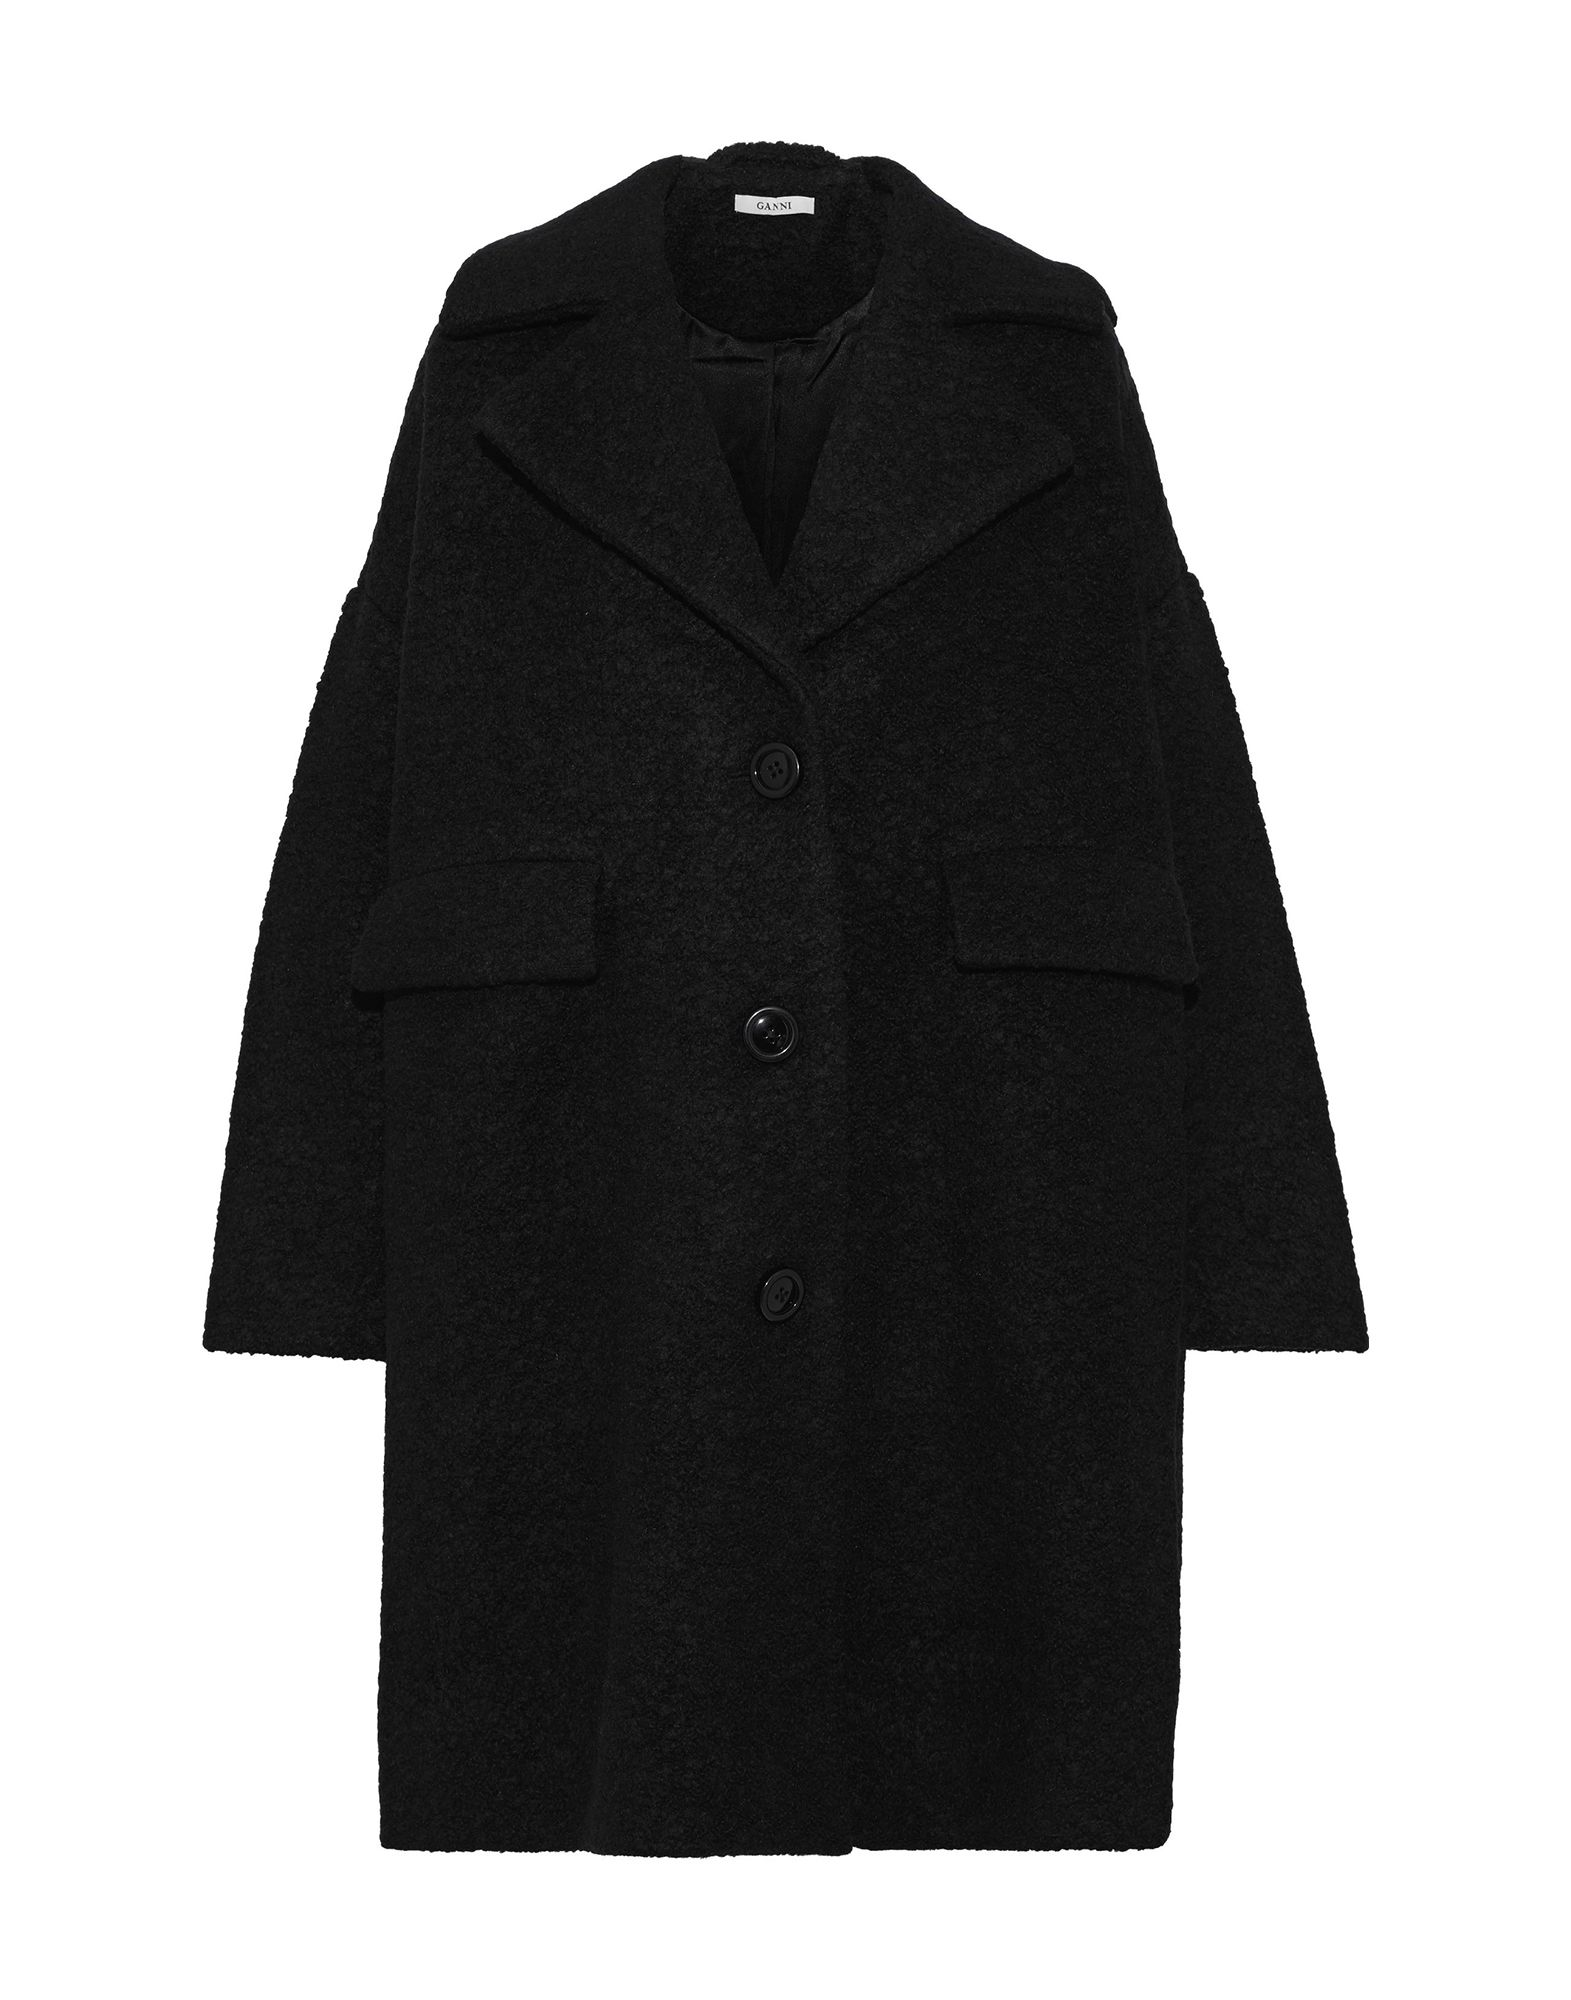 GANNI Coats. bouclé, no appliqués, basic solid color, single-breasted, button closing, lapel collar, multipockets, long sleeves, fully lined, large sized. 50% Wool, 50% Polyester